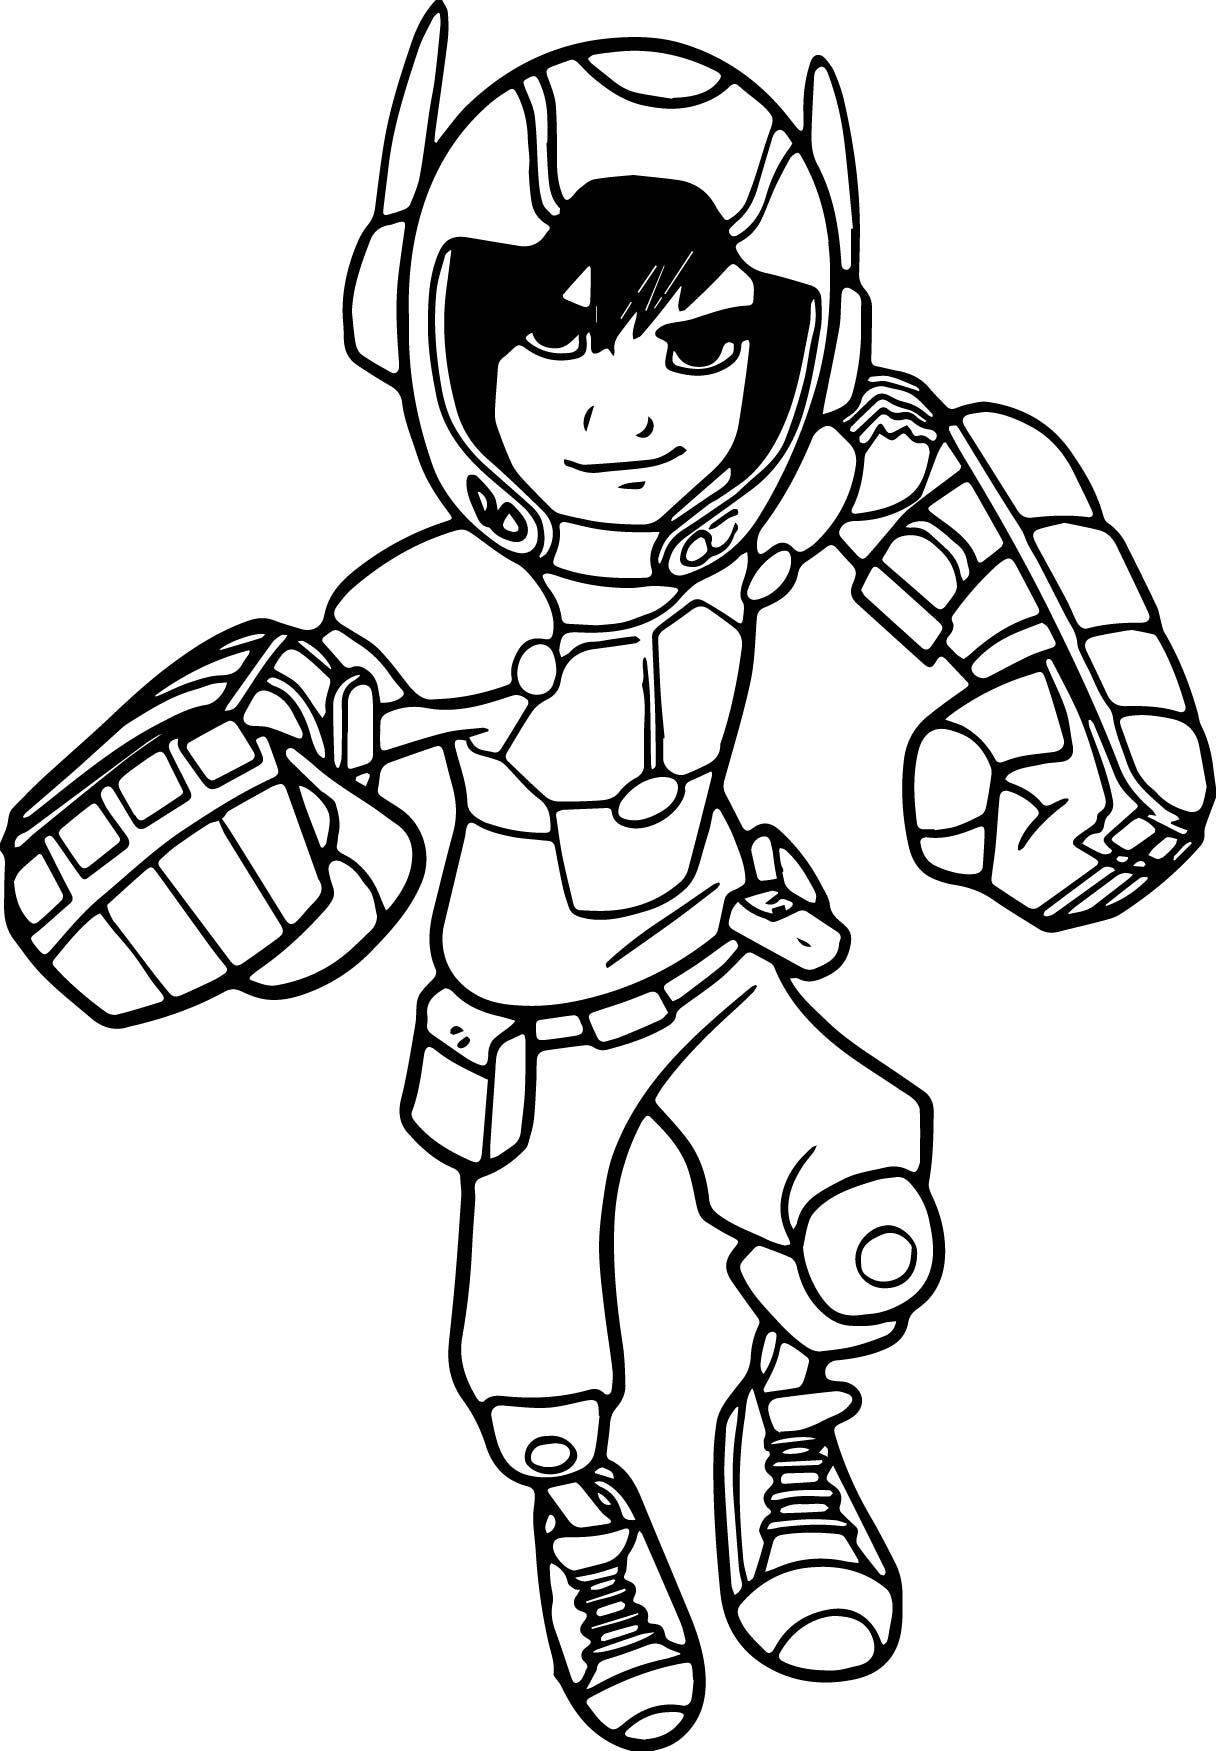 12+ Disney big hero 6 coloring pages ideas in 2021